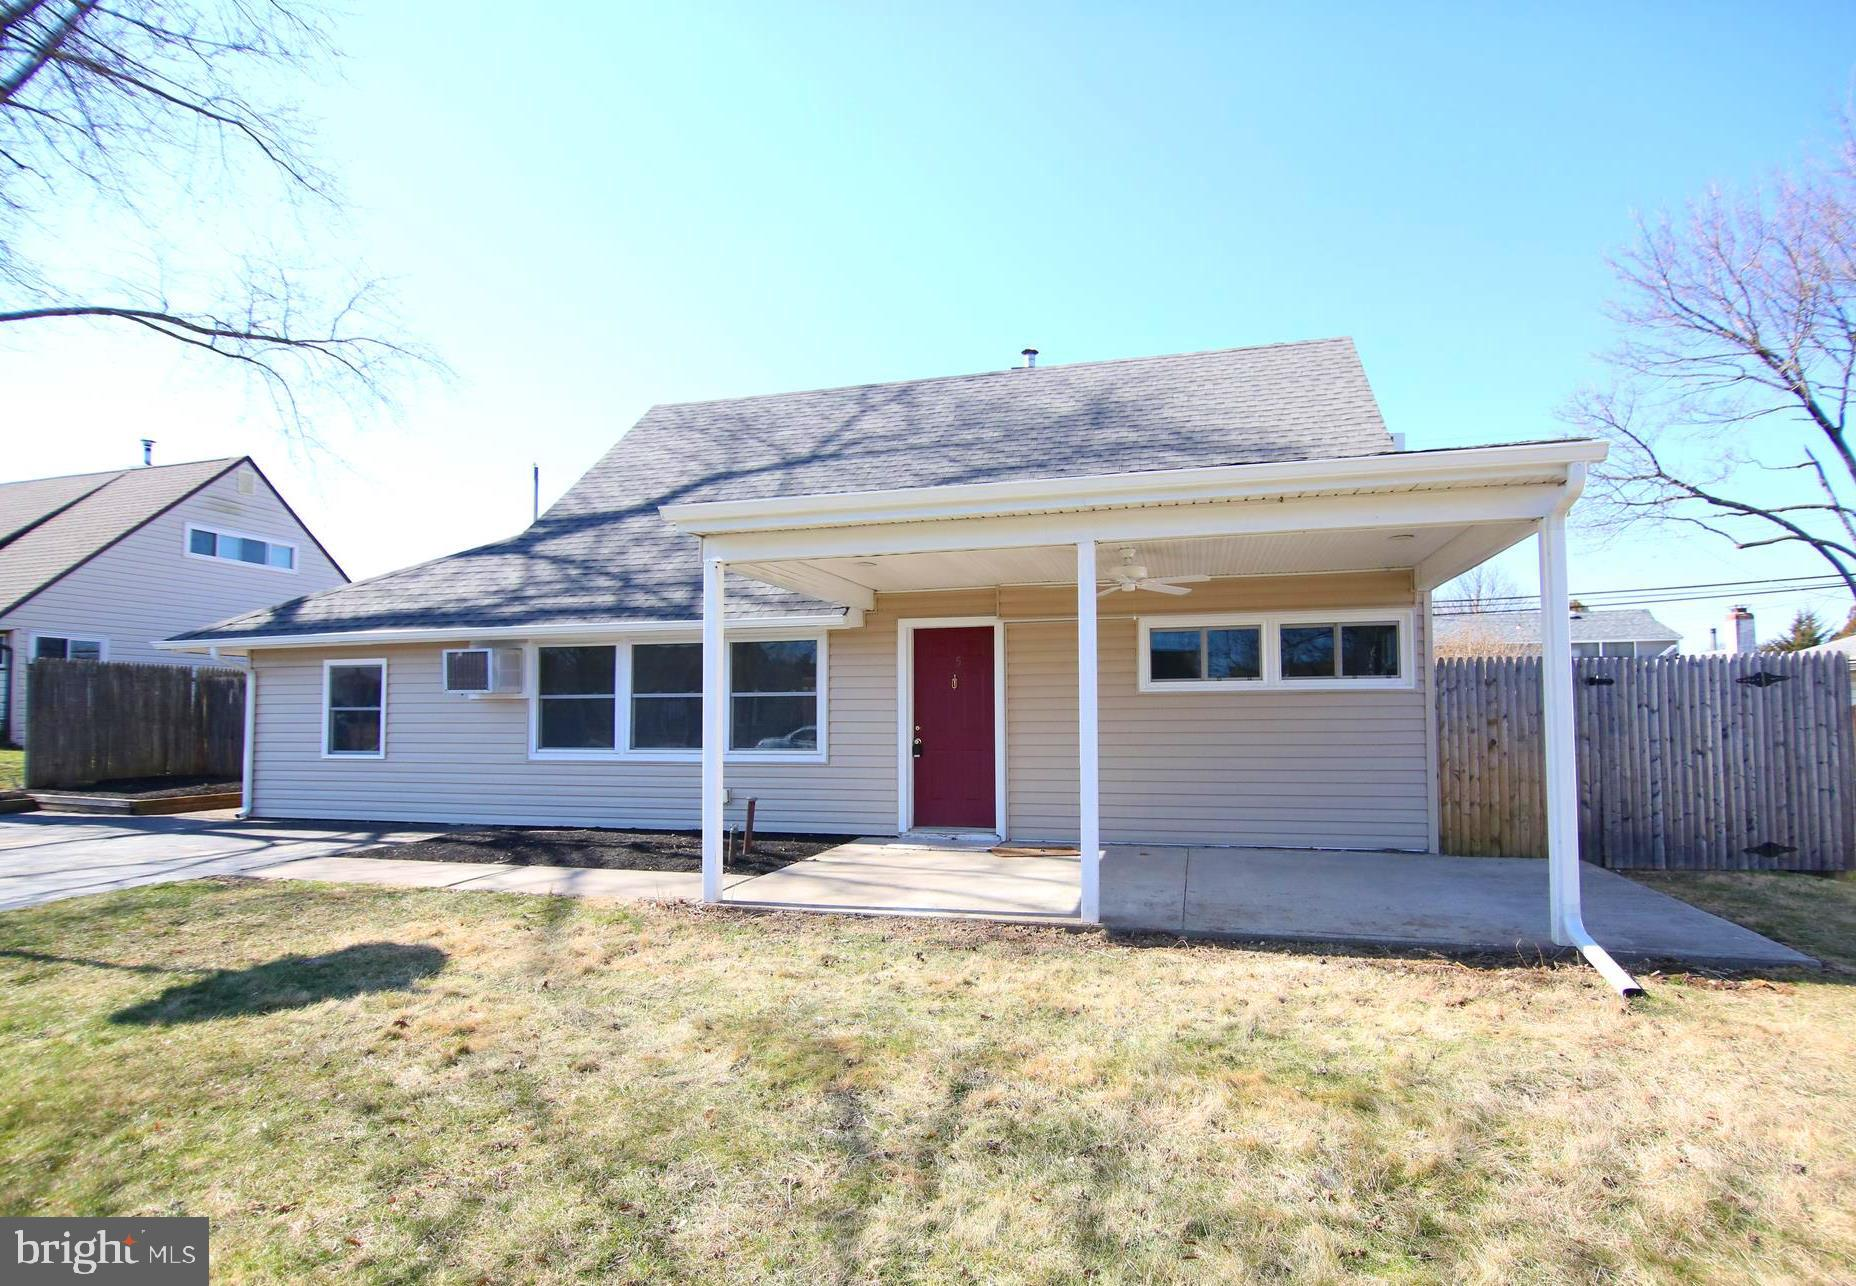 65 CANDLE ROAD, LEVITTOWN, PA 19057